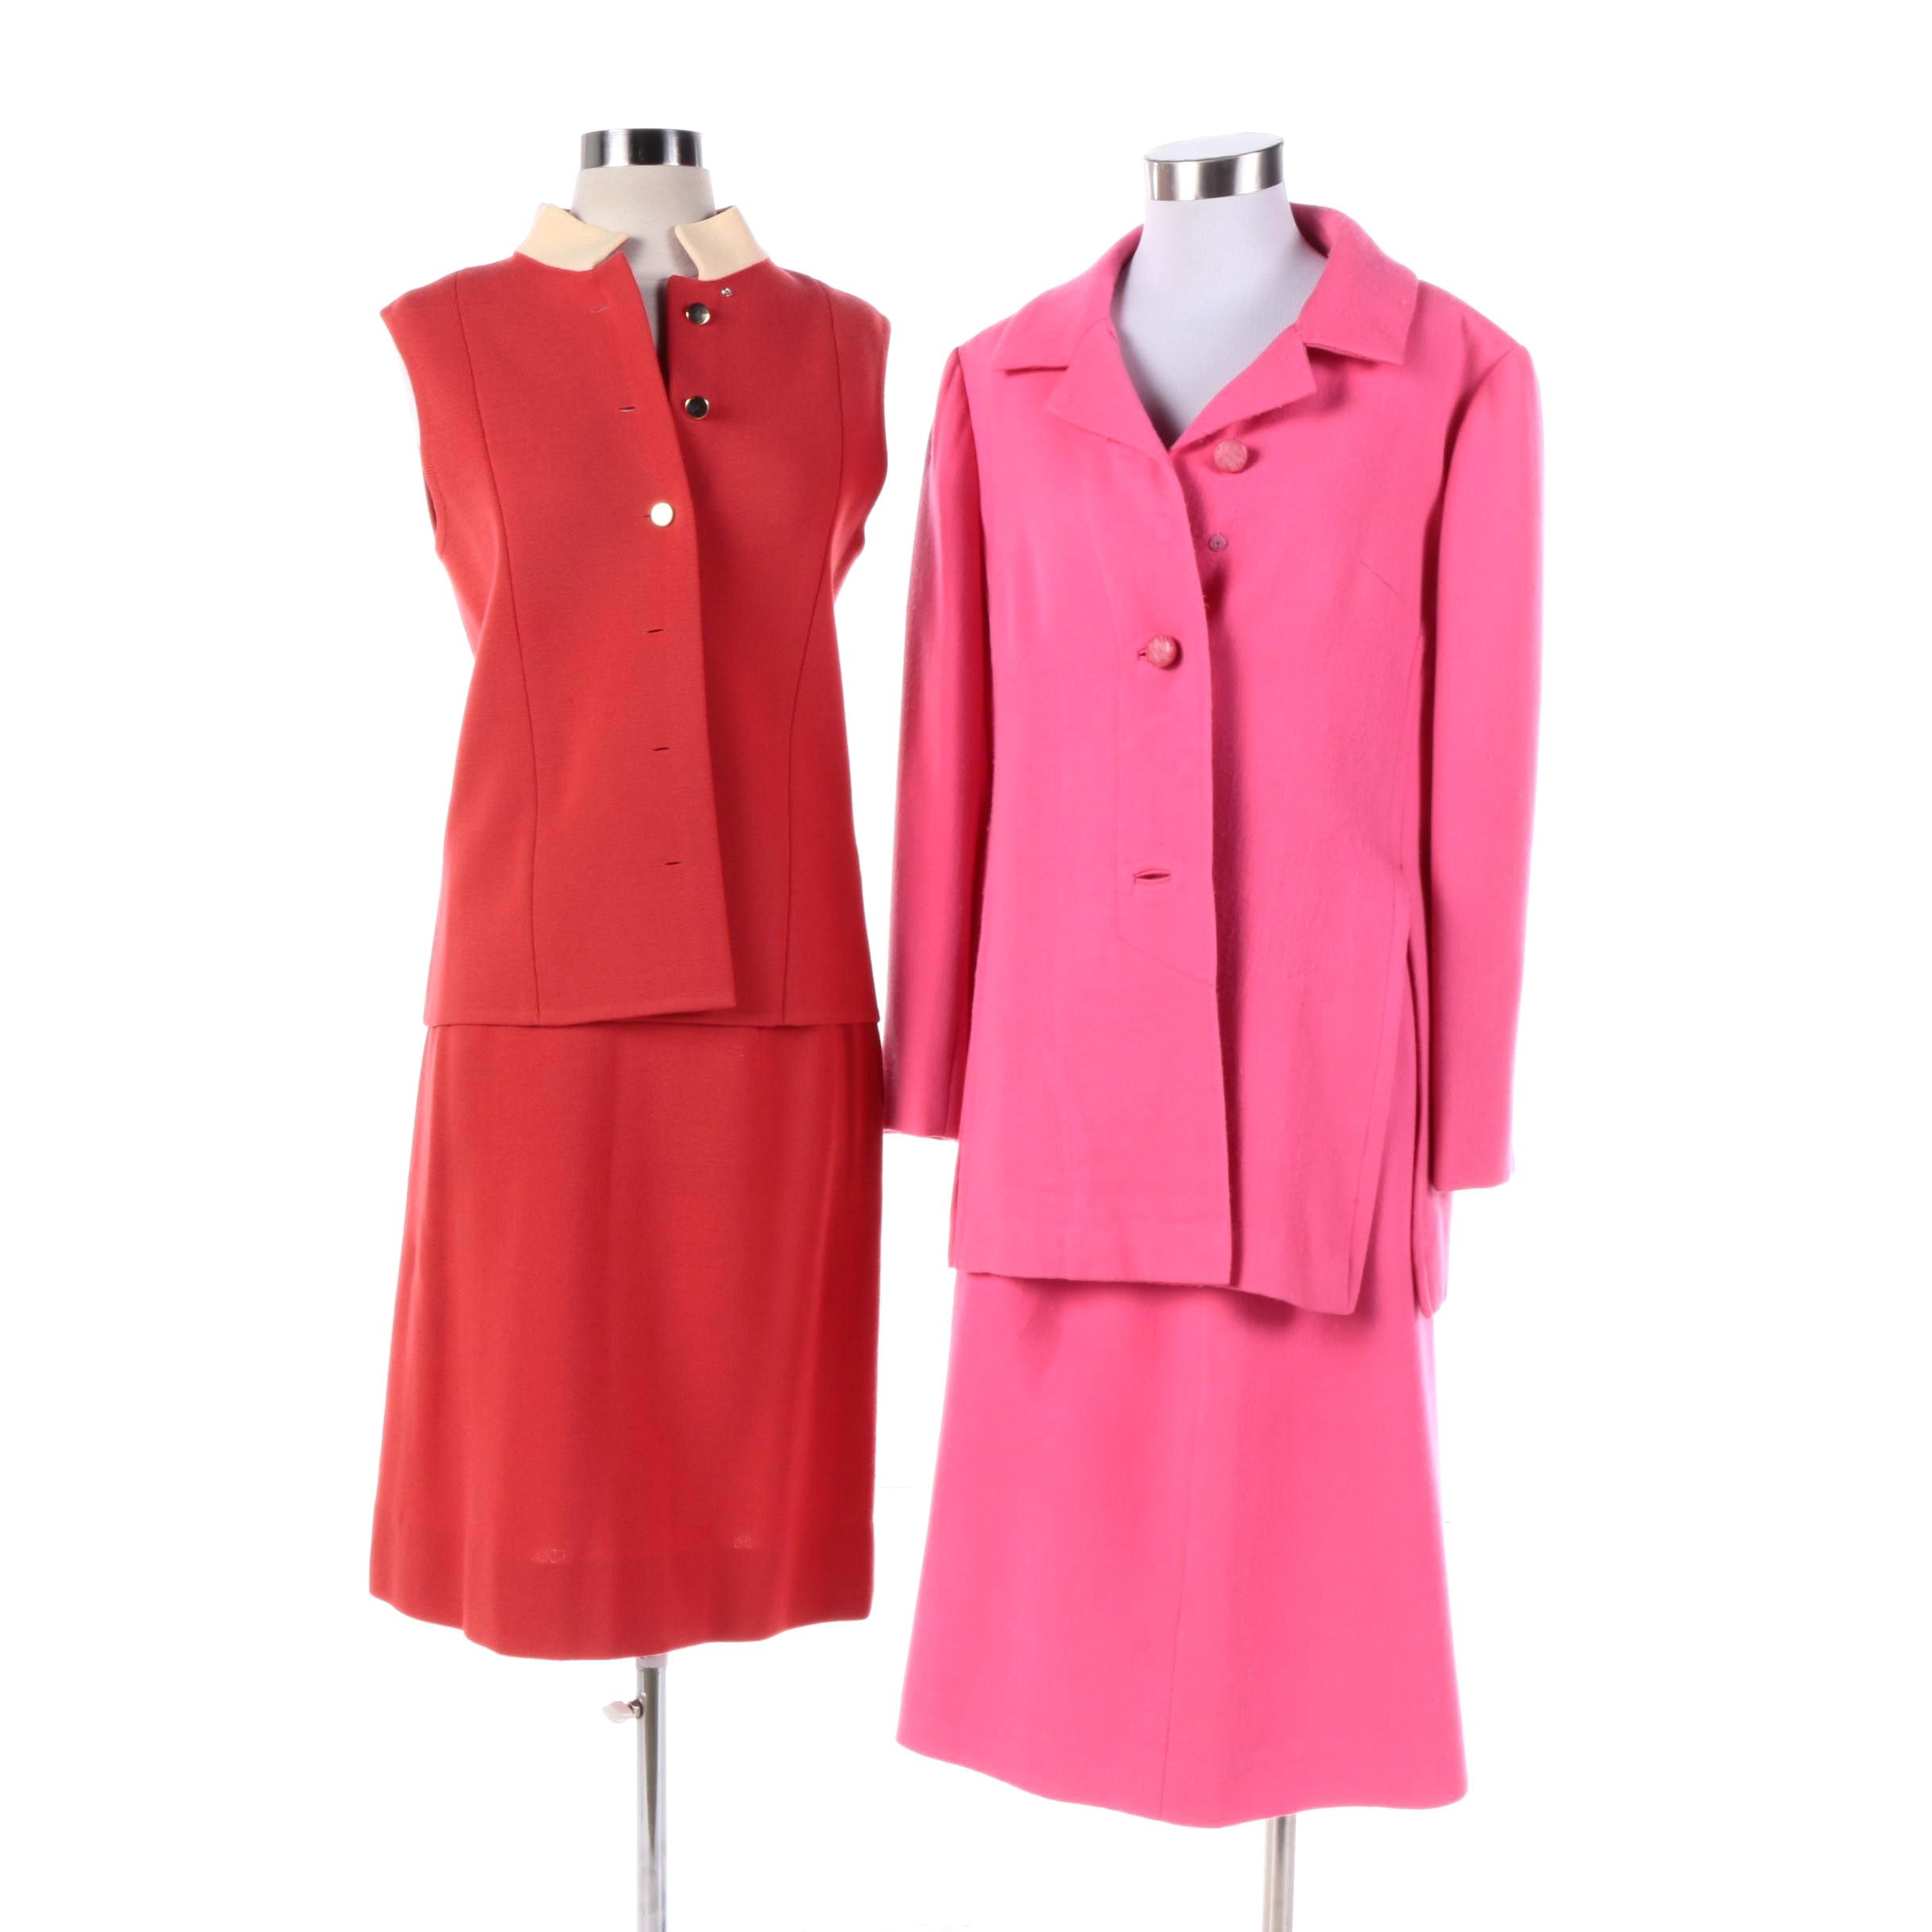 Mid-20th Century Vintage Colorful Silk and Wool Mod Skirt Suits